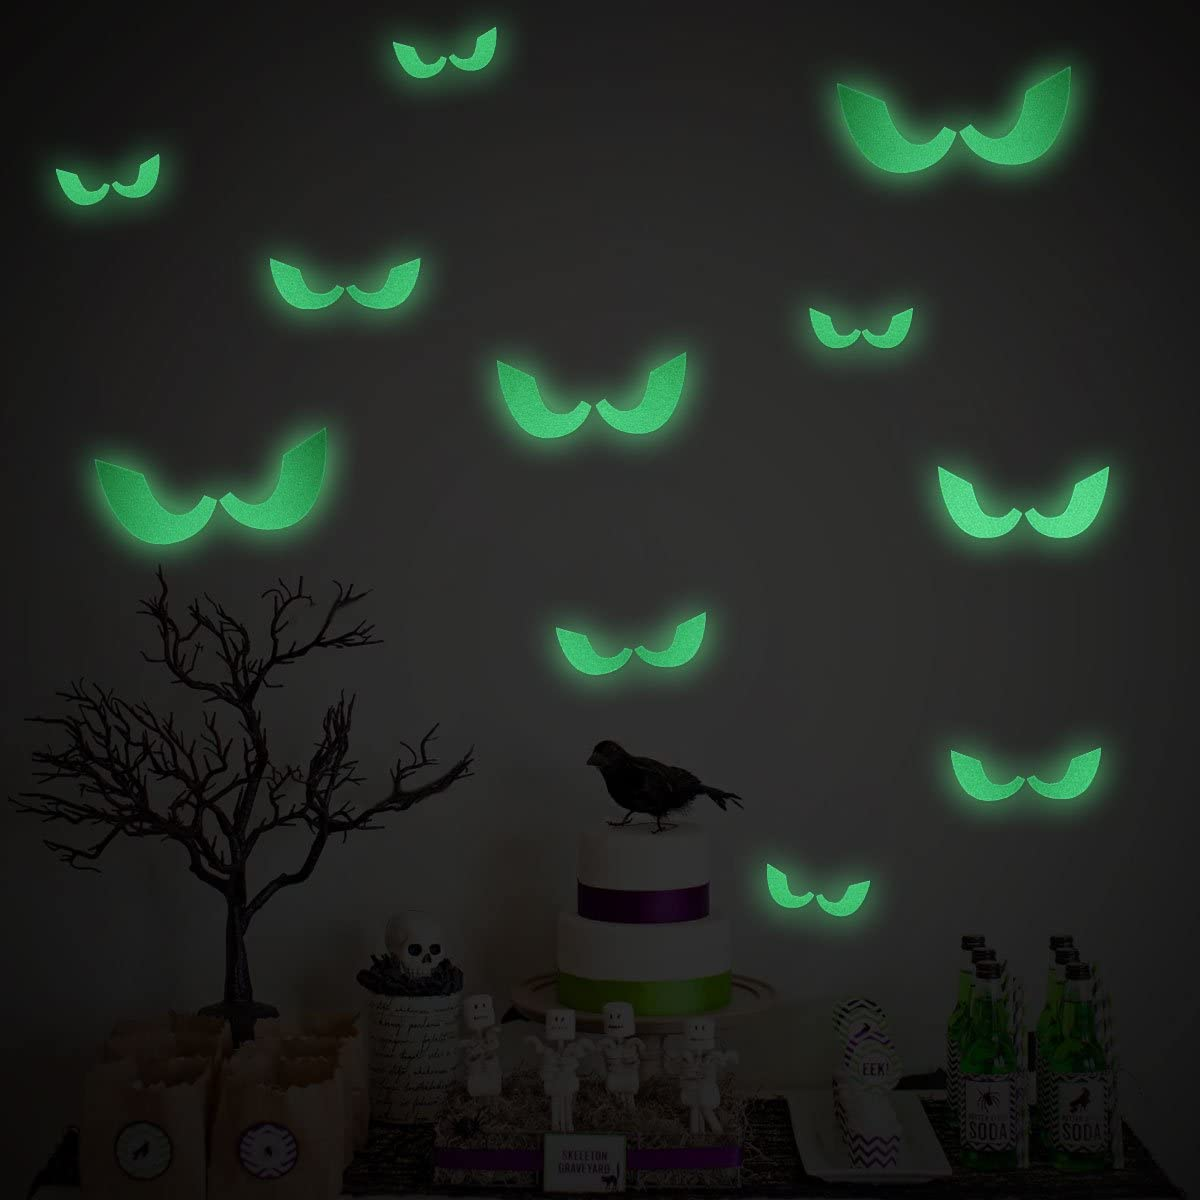 Halloween Wall Window Decorations Glow in The Dark Stickers Evil Eyes 23 Pcs with 5 Sizes